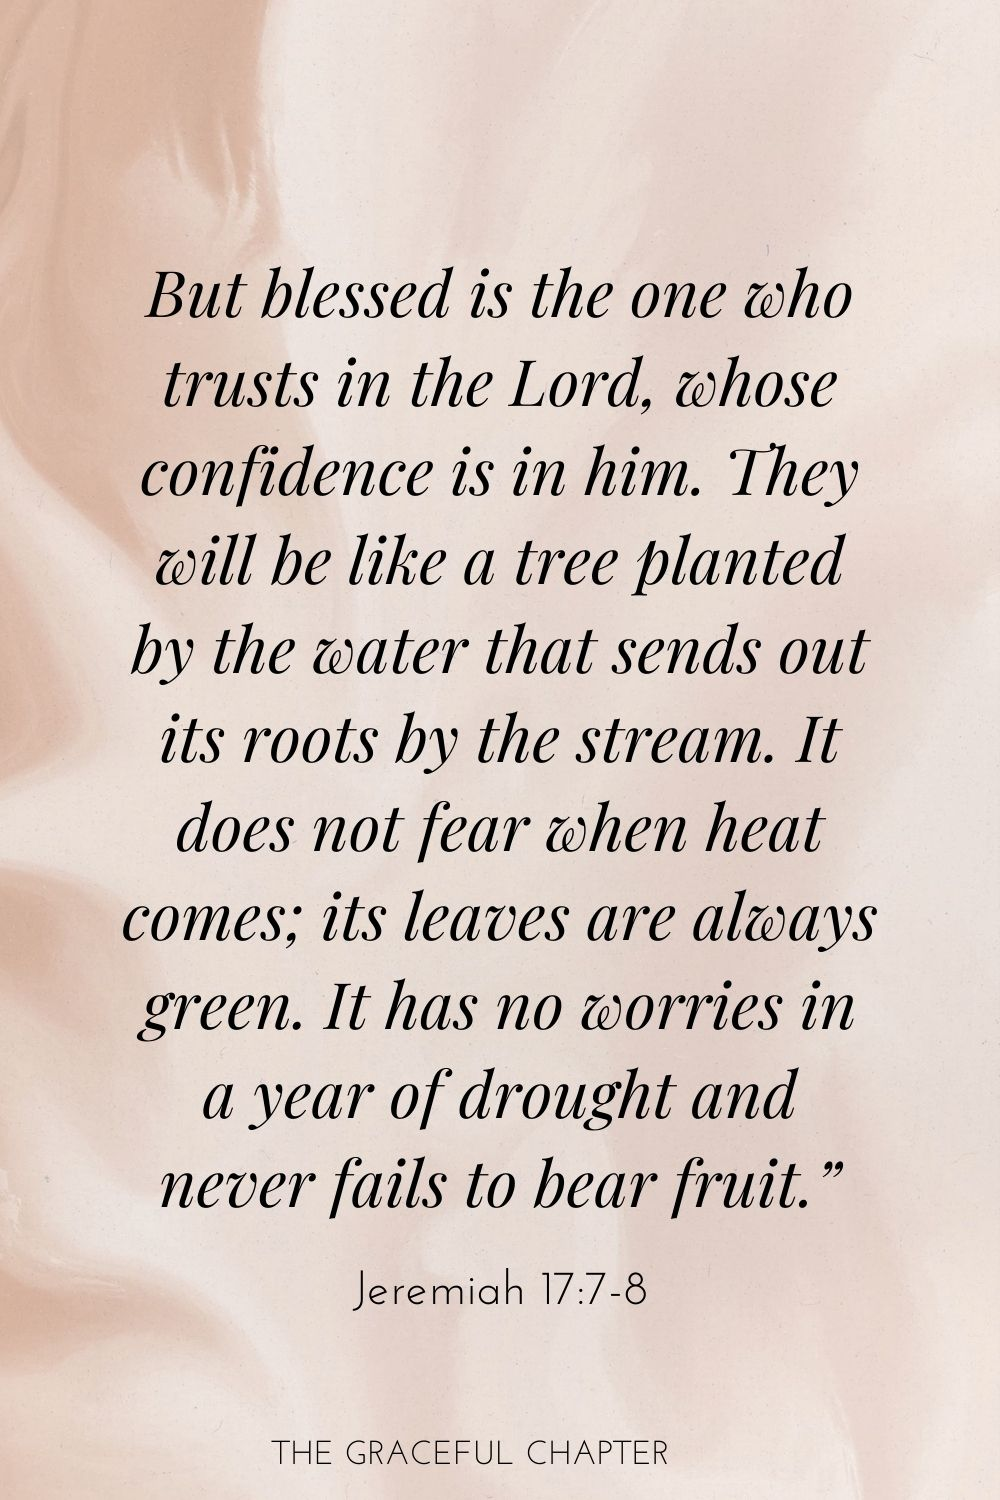 "But blessed is the one who trusts in the Lord, whose confidence is in him. They will be like a tree planted by the water that sends out its roots by the stream. It does not fear when heat comes; its leaves are always green. It has no worries in a year of drought and never fails to bear fruit."" Jeremiah 17:7-8"